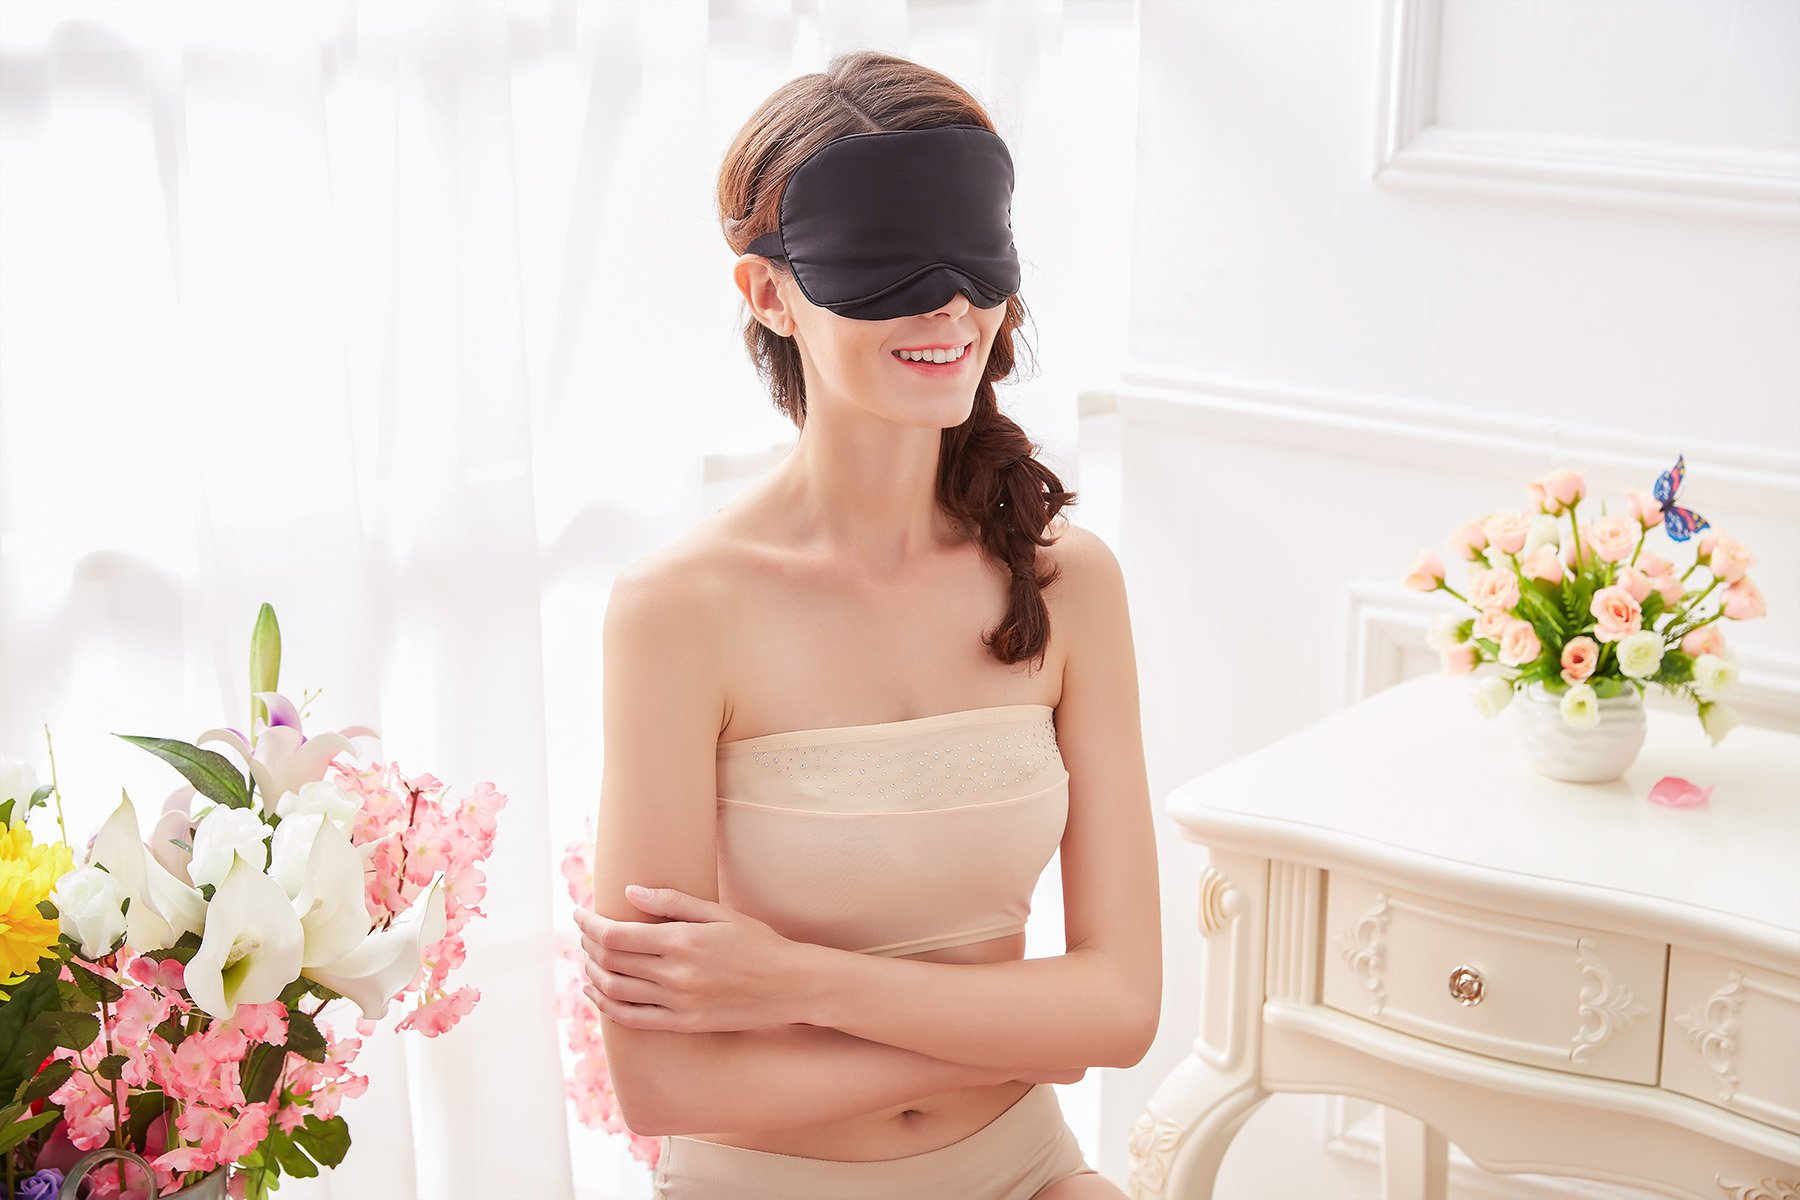 Natural Silk Sleep Mask & Blindfold - Lifetime Guarantee - Super Smooth Eye Mask for Men & Women & Kids - Your Best Travel Sleeping Helper - Include FREE Ear Plugs by Babo Care (Image #5)